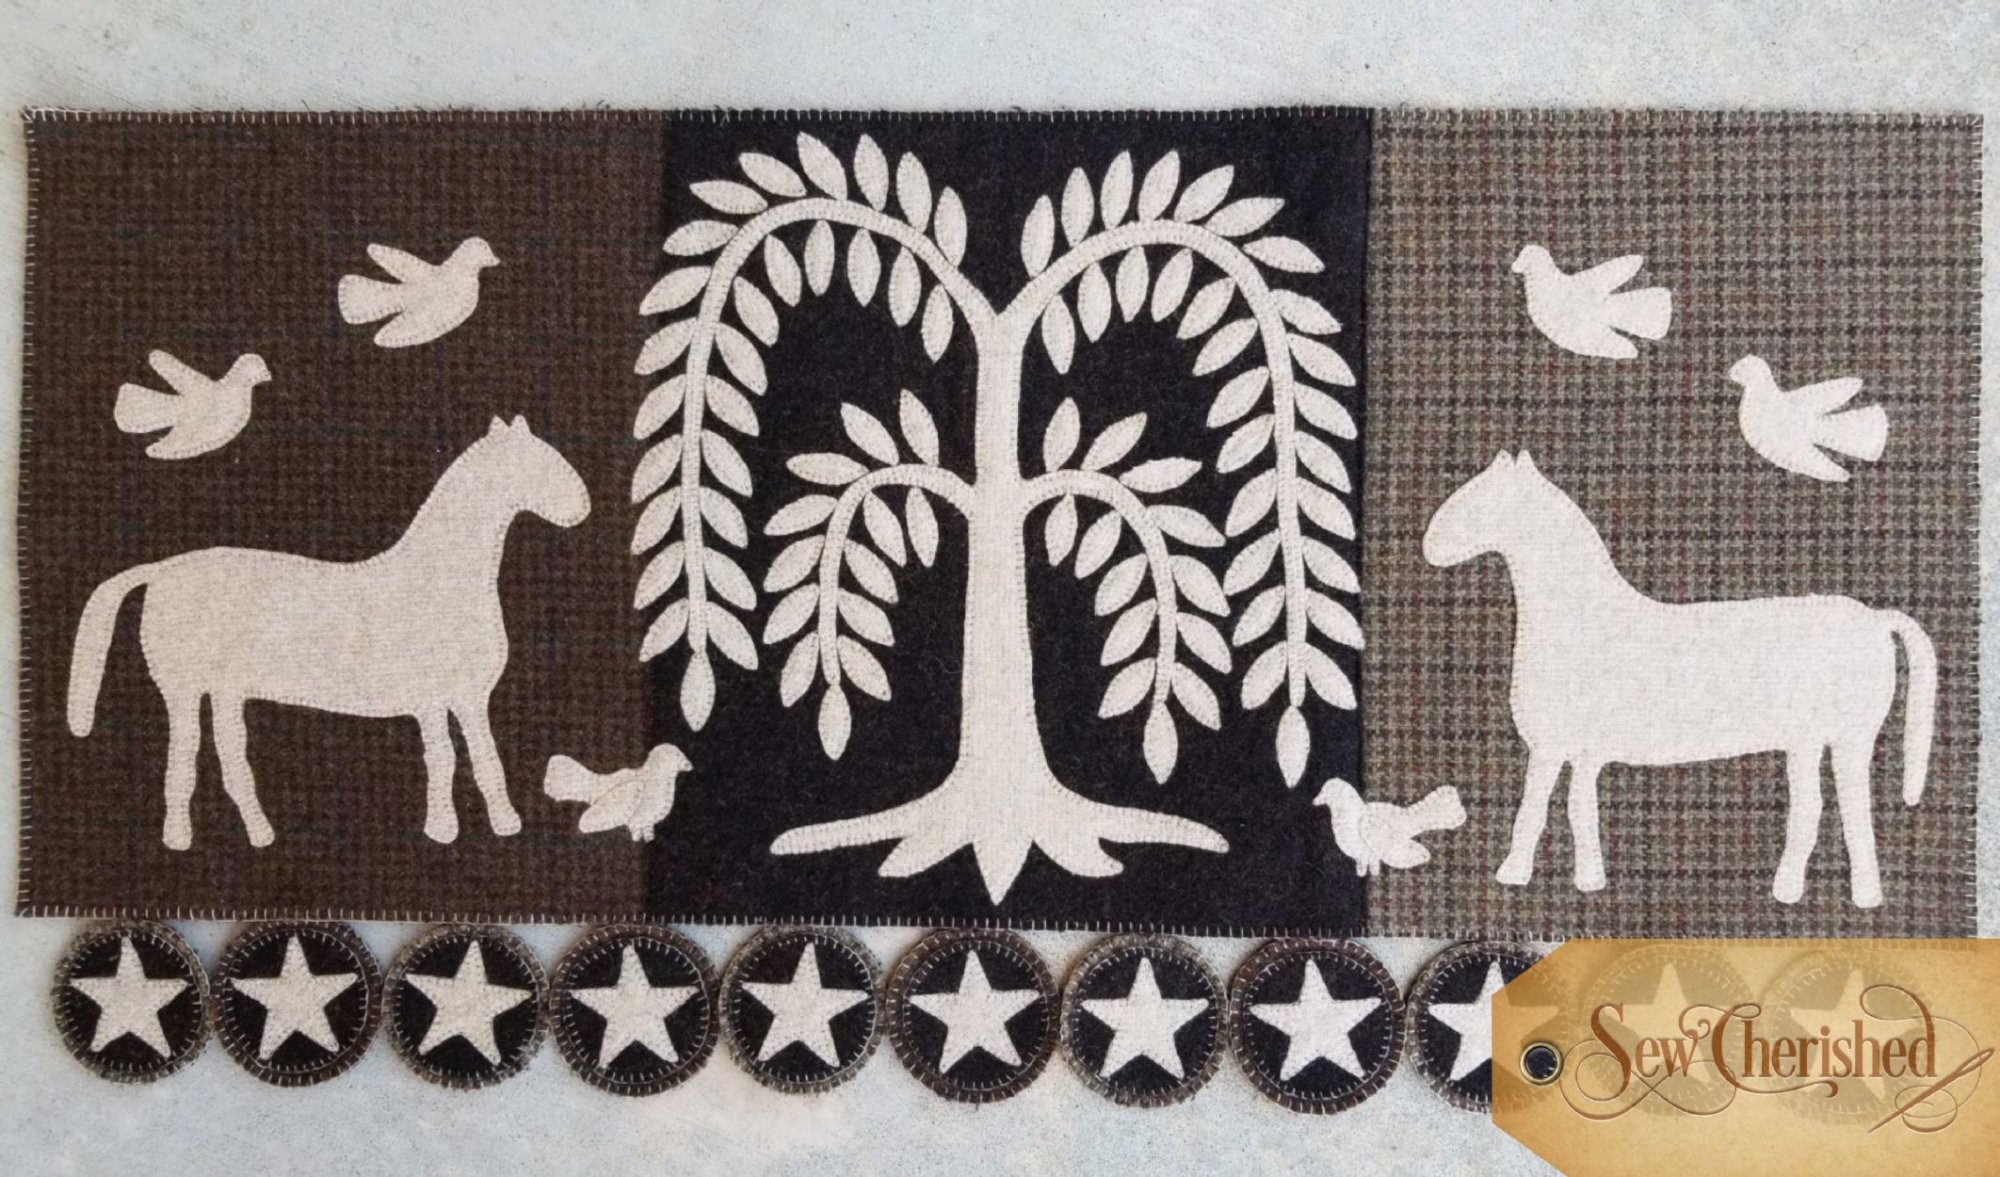 All Things Primitive by Sew Cherished